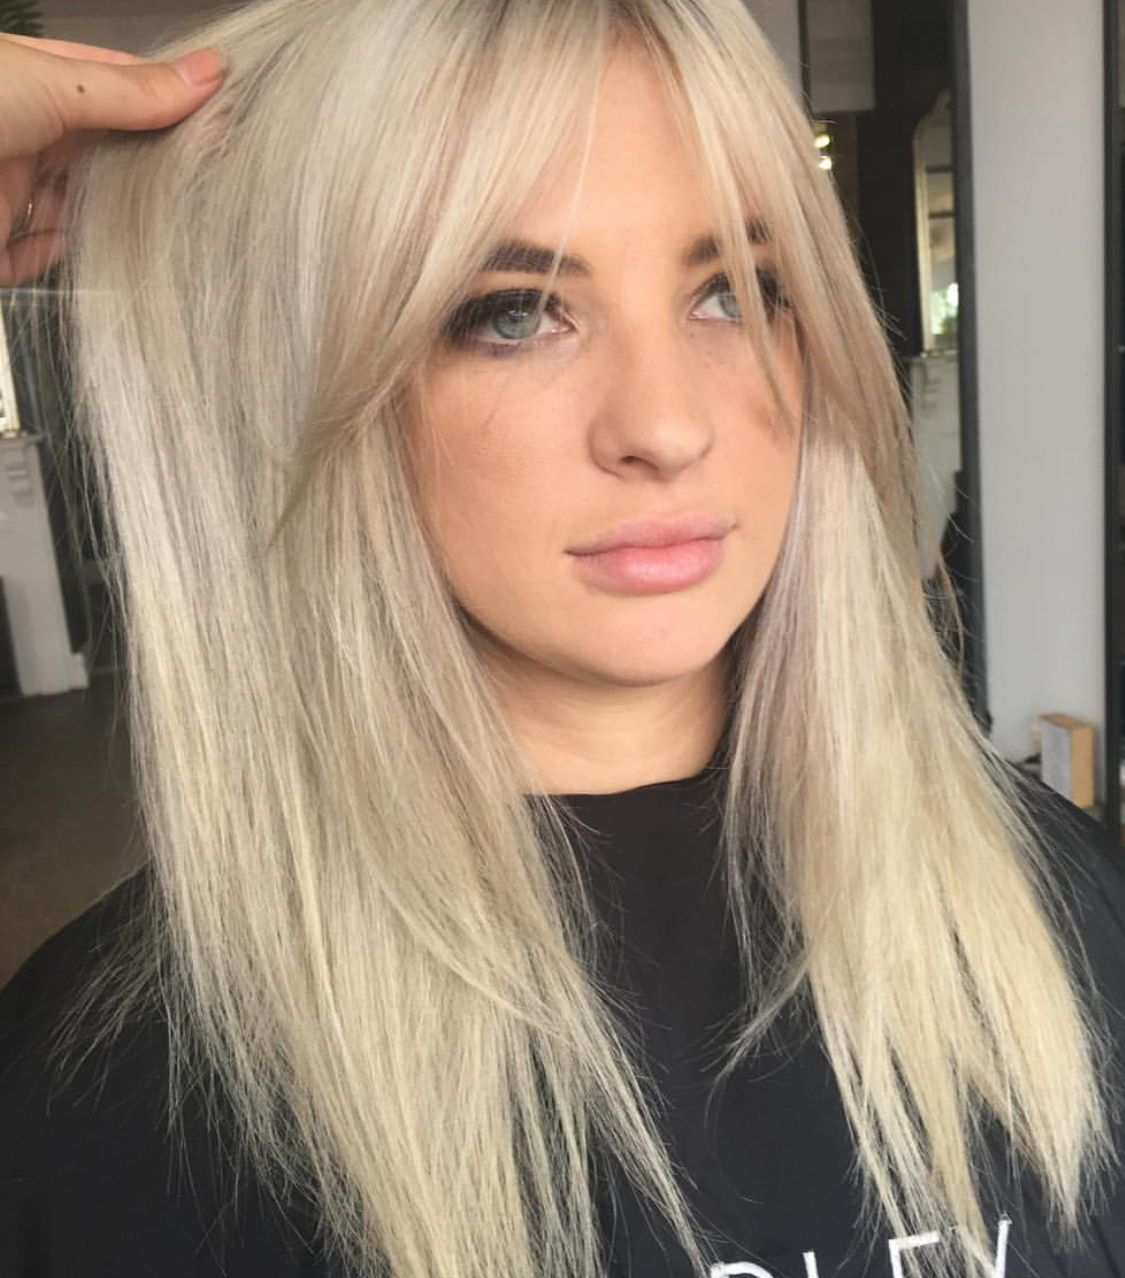 Blonde Platinum Silver Hair Color And Curtain Bangs Hairstyles Hair Styles Blonde Hair With Bangs Long Hair Styles